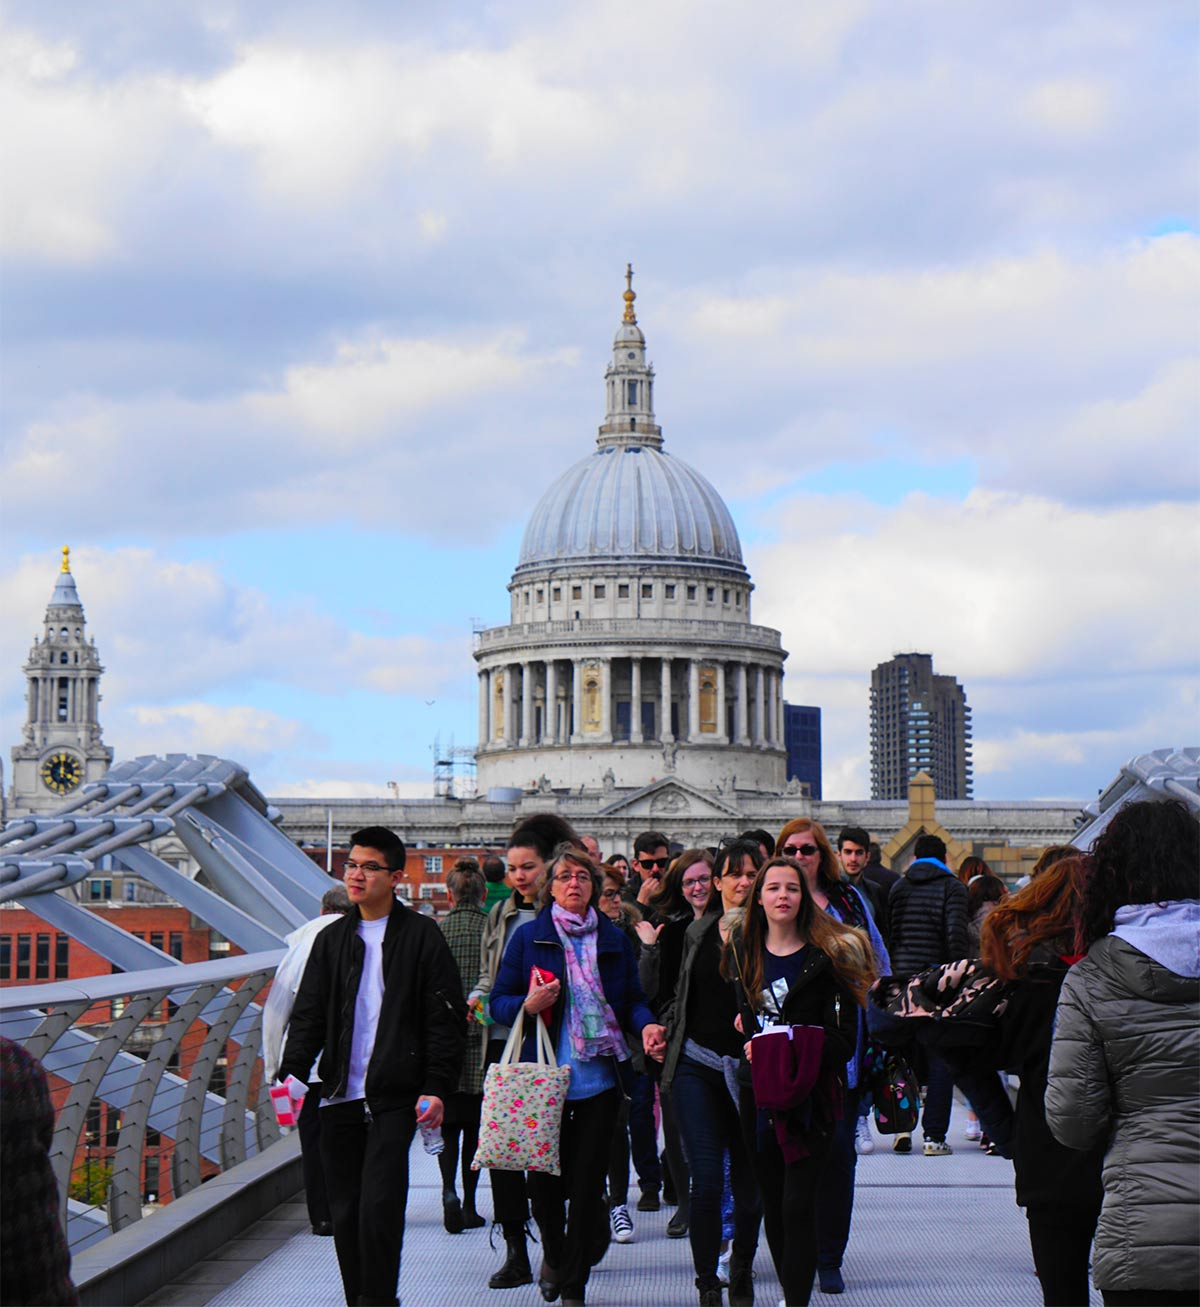 weekend a londra cosa vedere